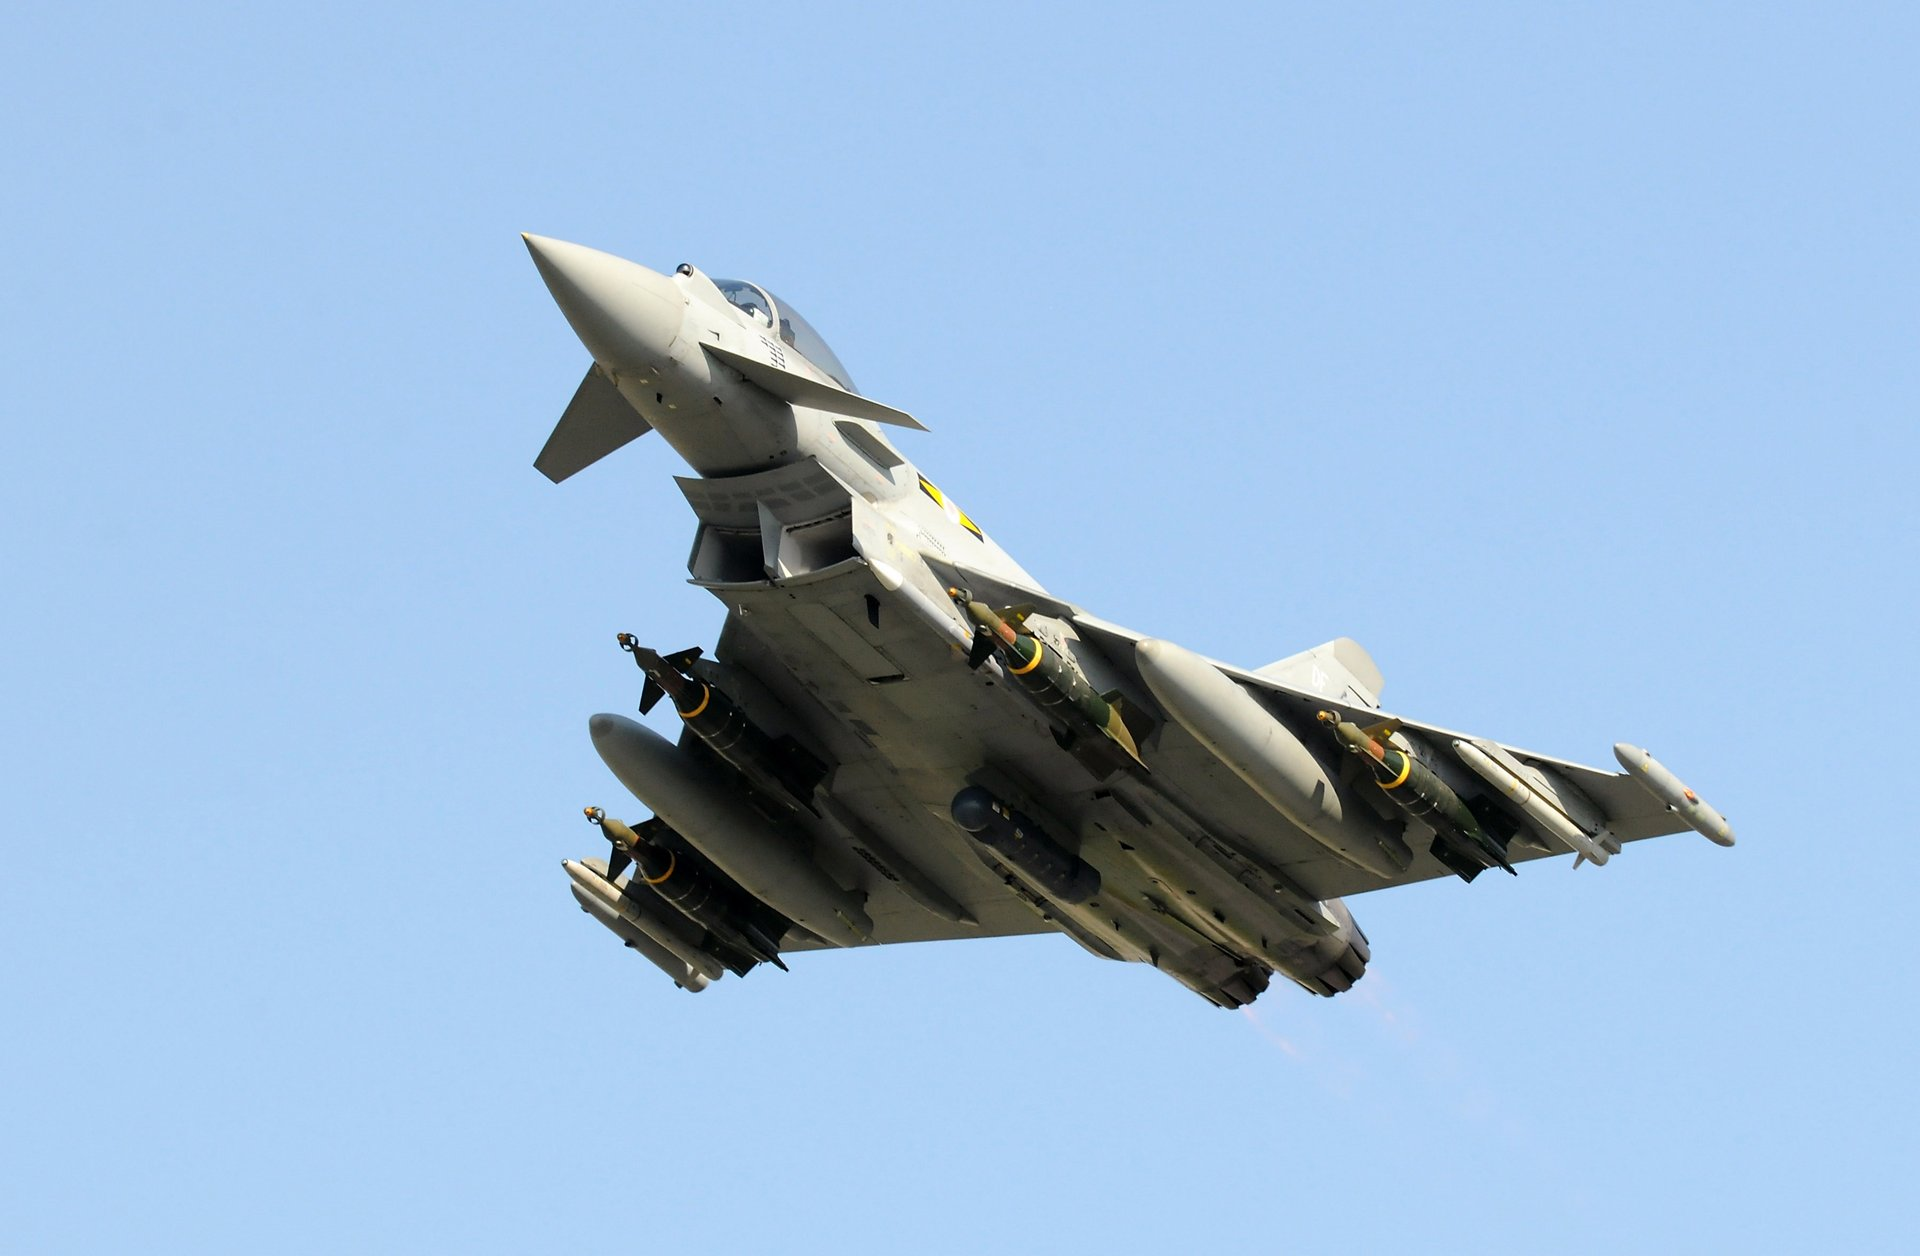 Representation of a Eurofighter Typhoon swing-role fighter aircraft in flight.